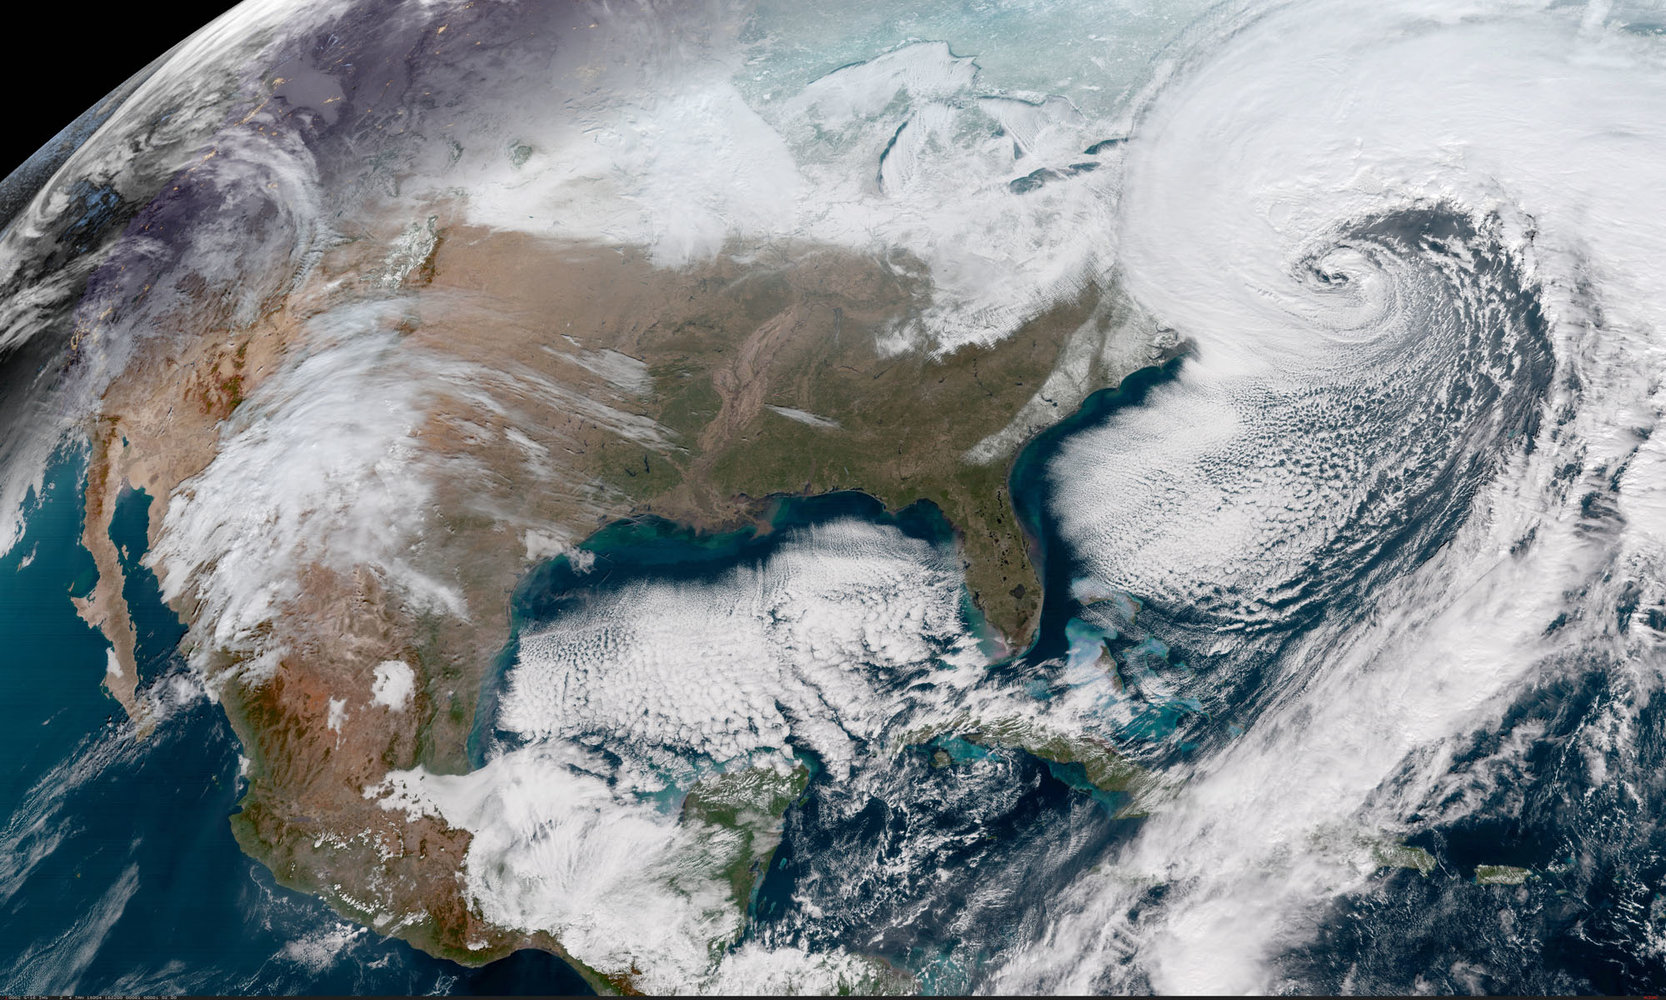 Blizzard clipart ocean storm. See the bomb cyclone